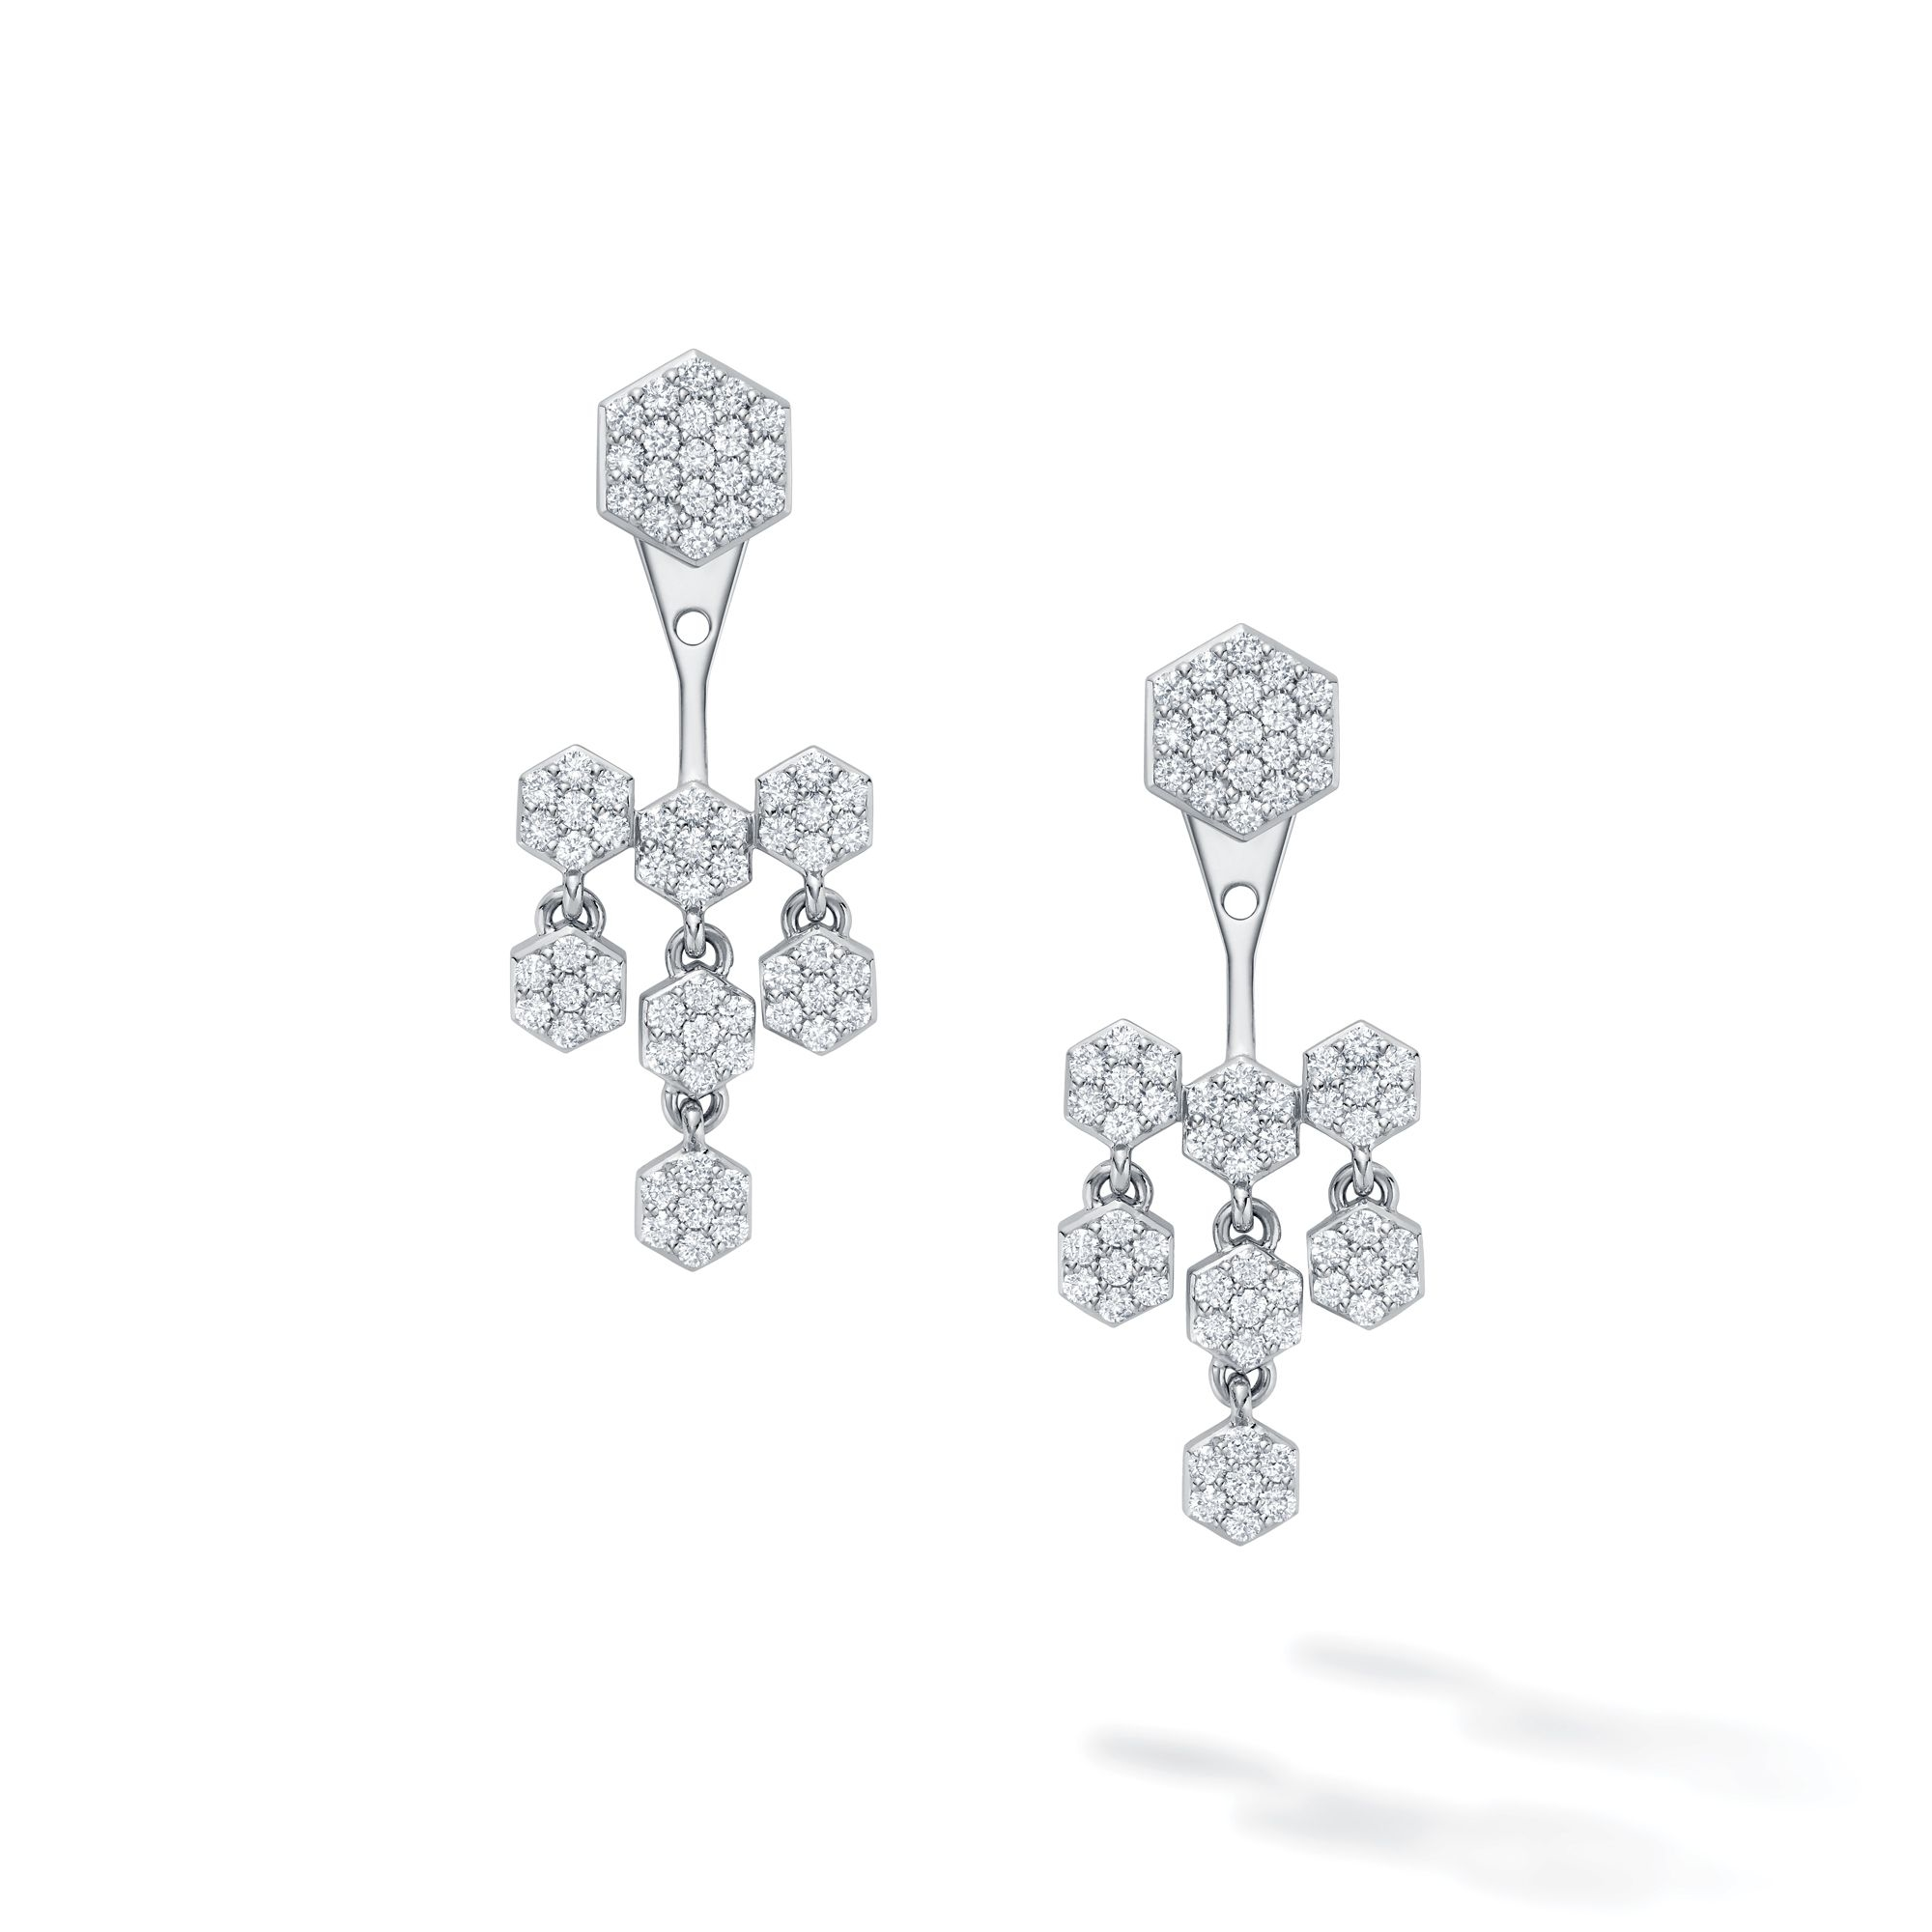 Birks 18K White Gold 1.31cts  Diamond Gold Earrings with Stones 450014069997